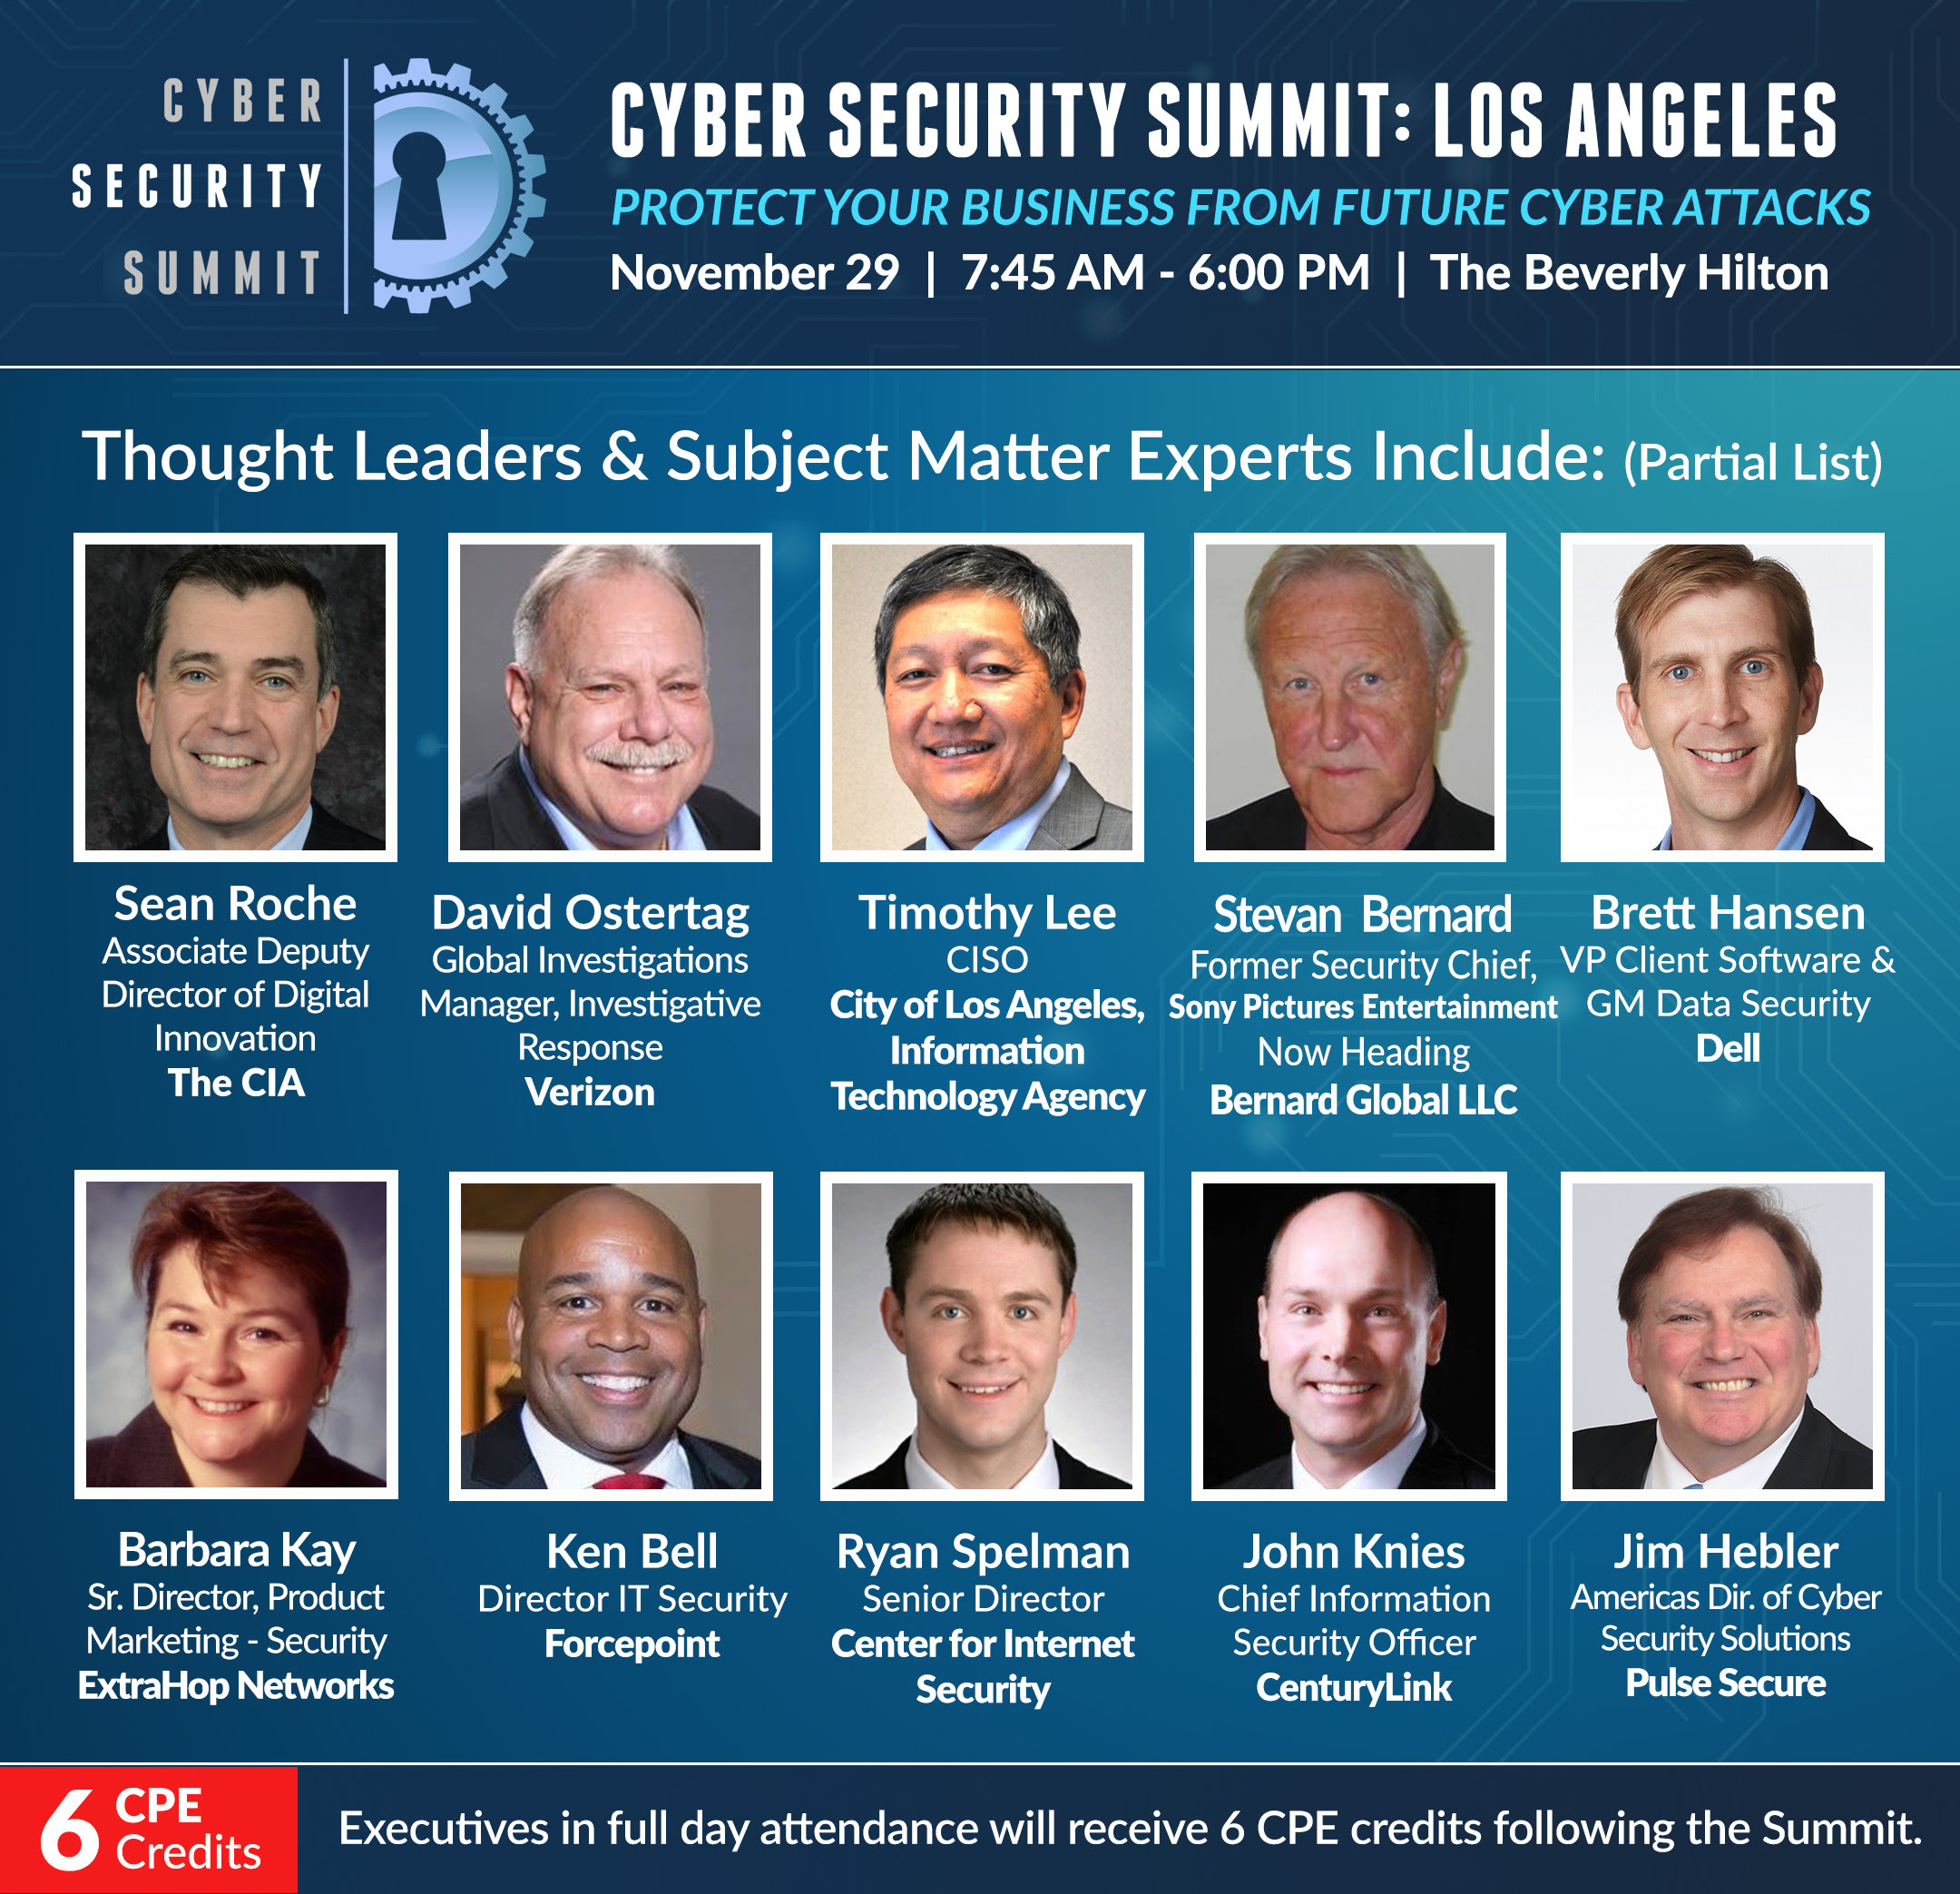 Complimentary Admission to the Cyber Security Summit Los Angeles with code: LA2018VIP